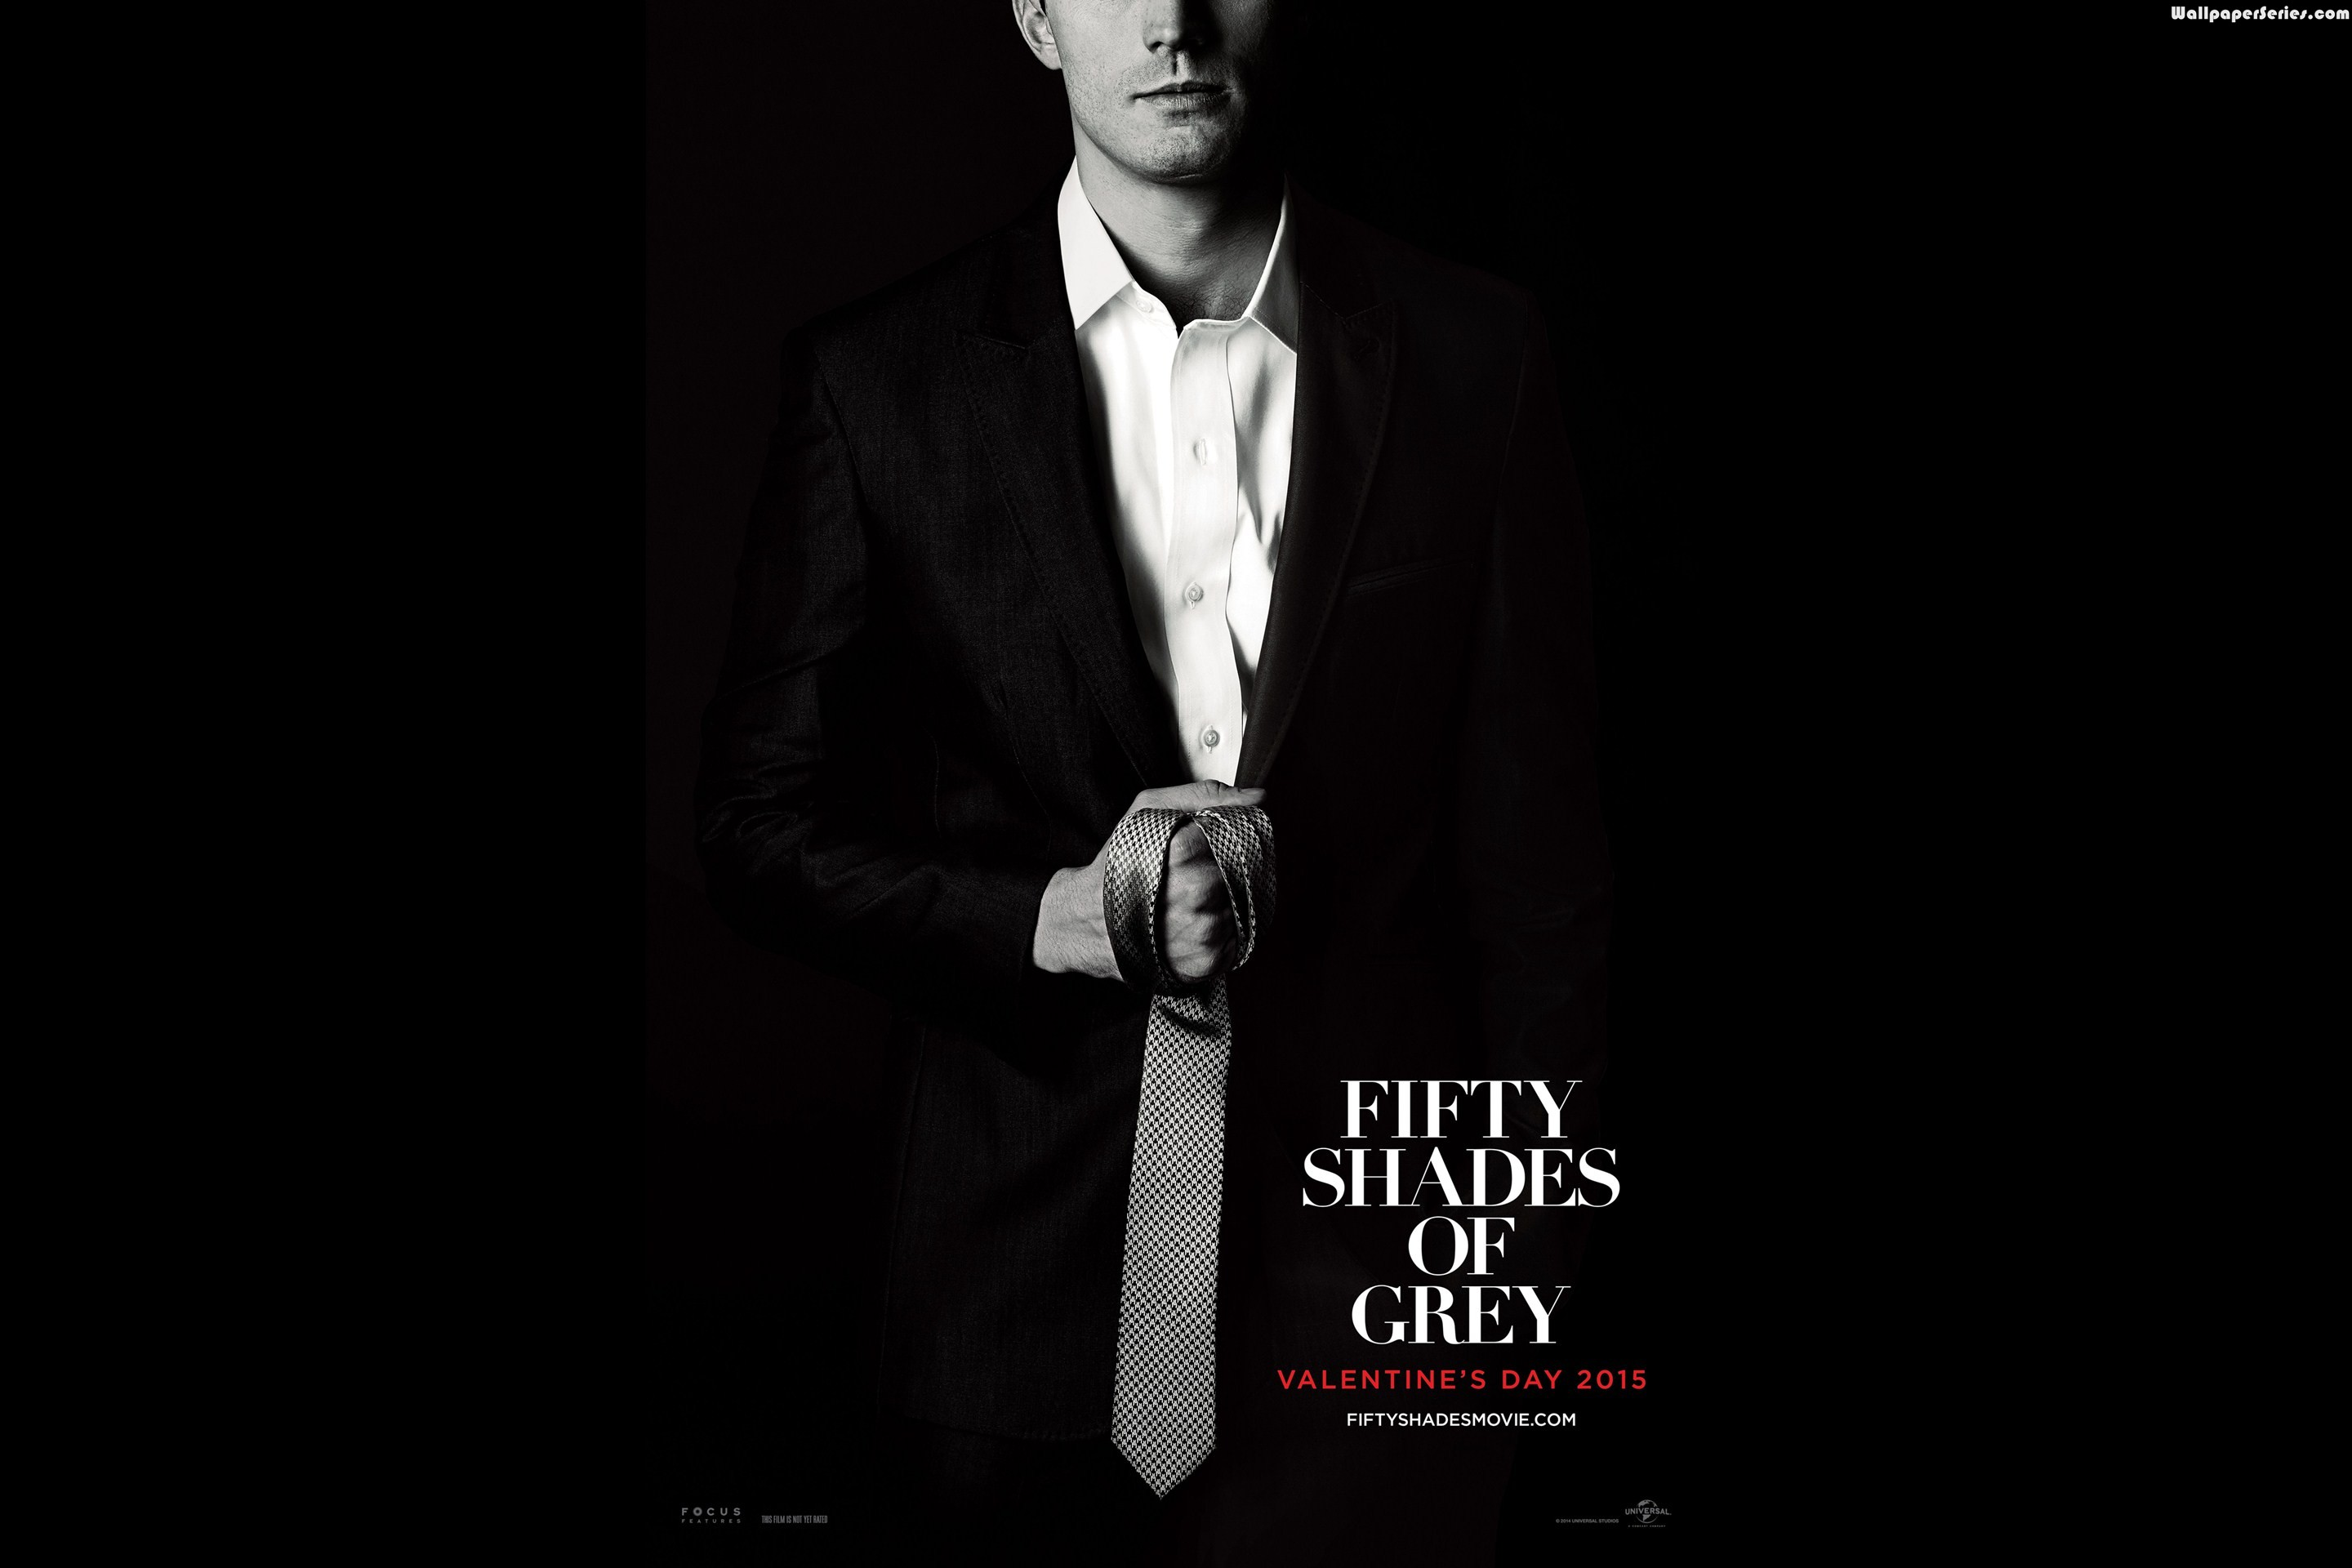 Fifty shades of grey wallpaper wallpapersafari for Fifty shades od gray